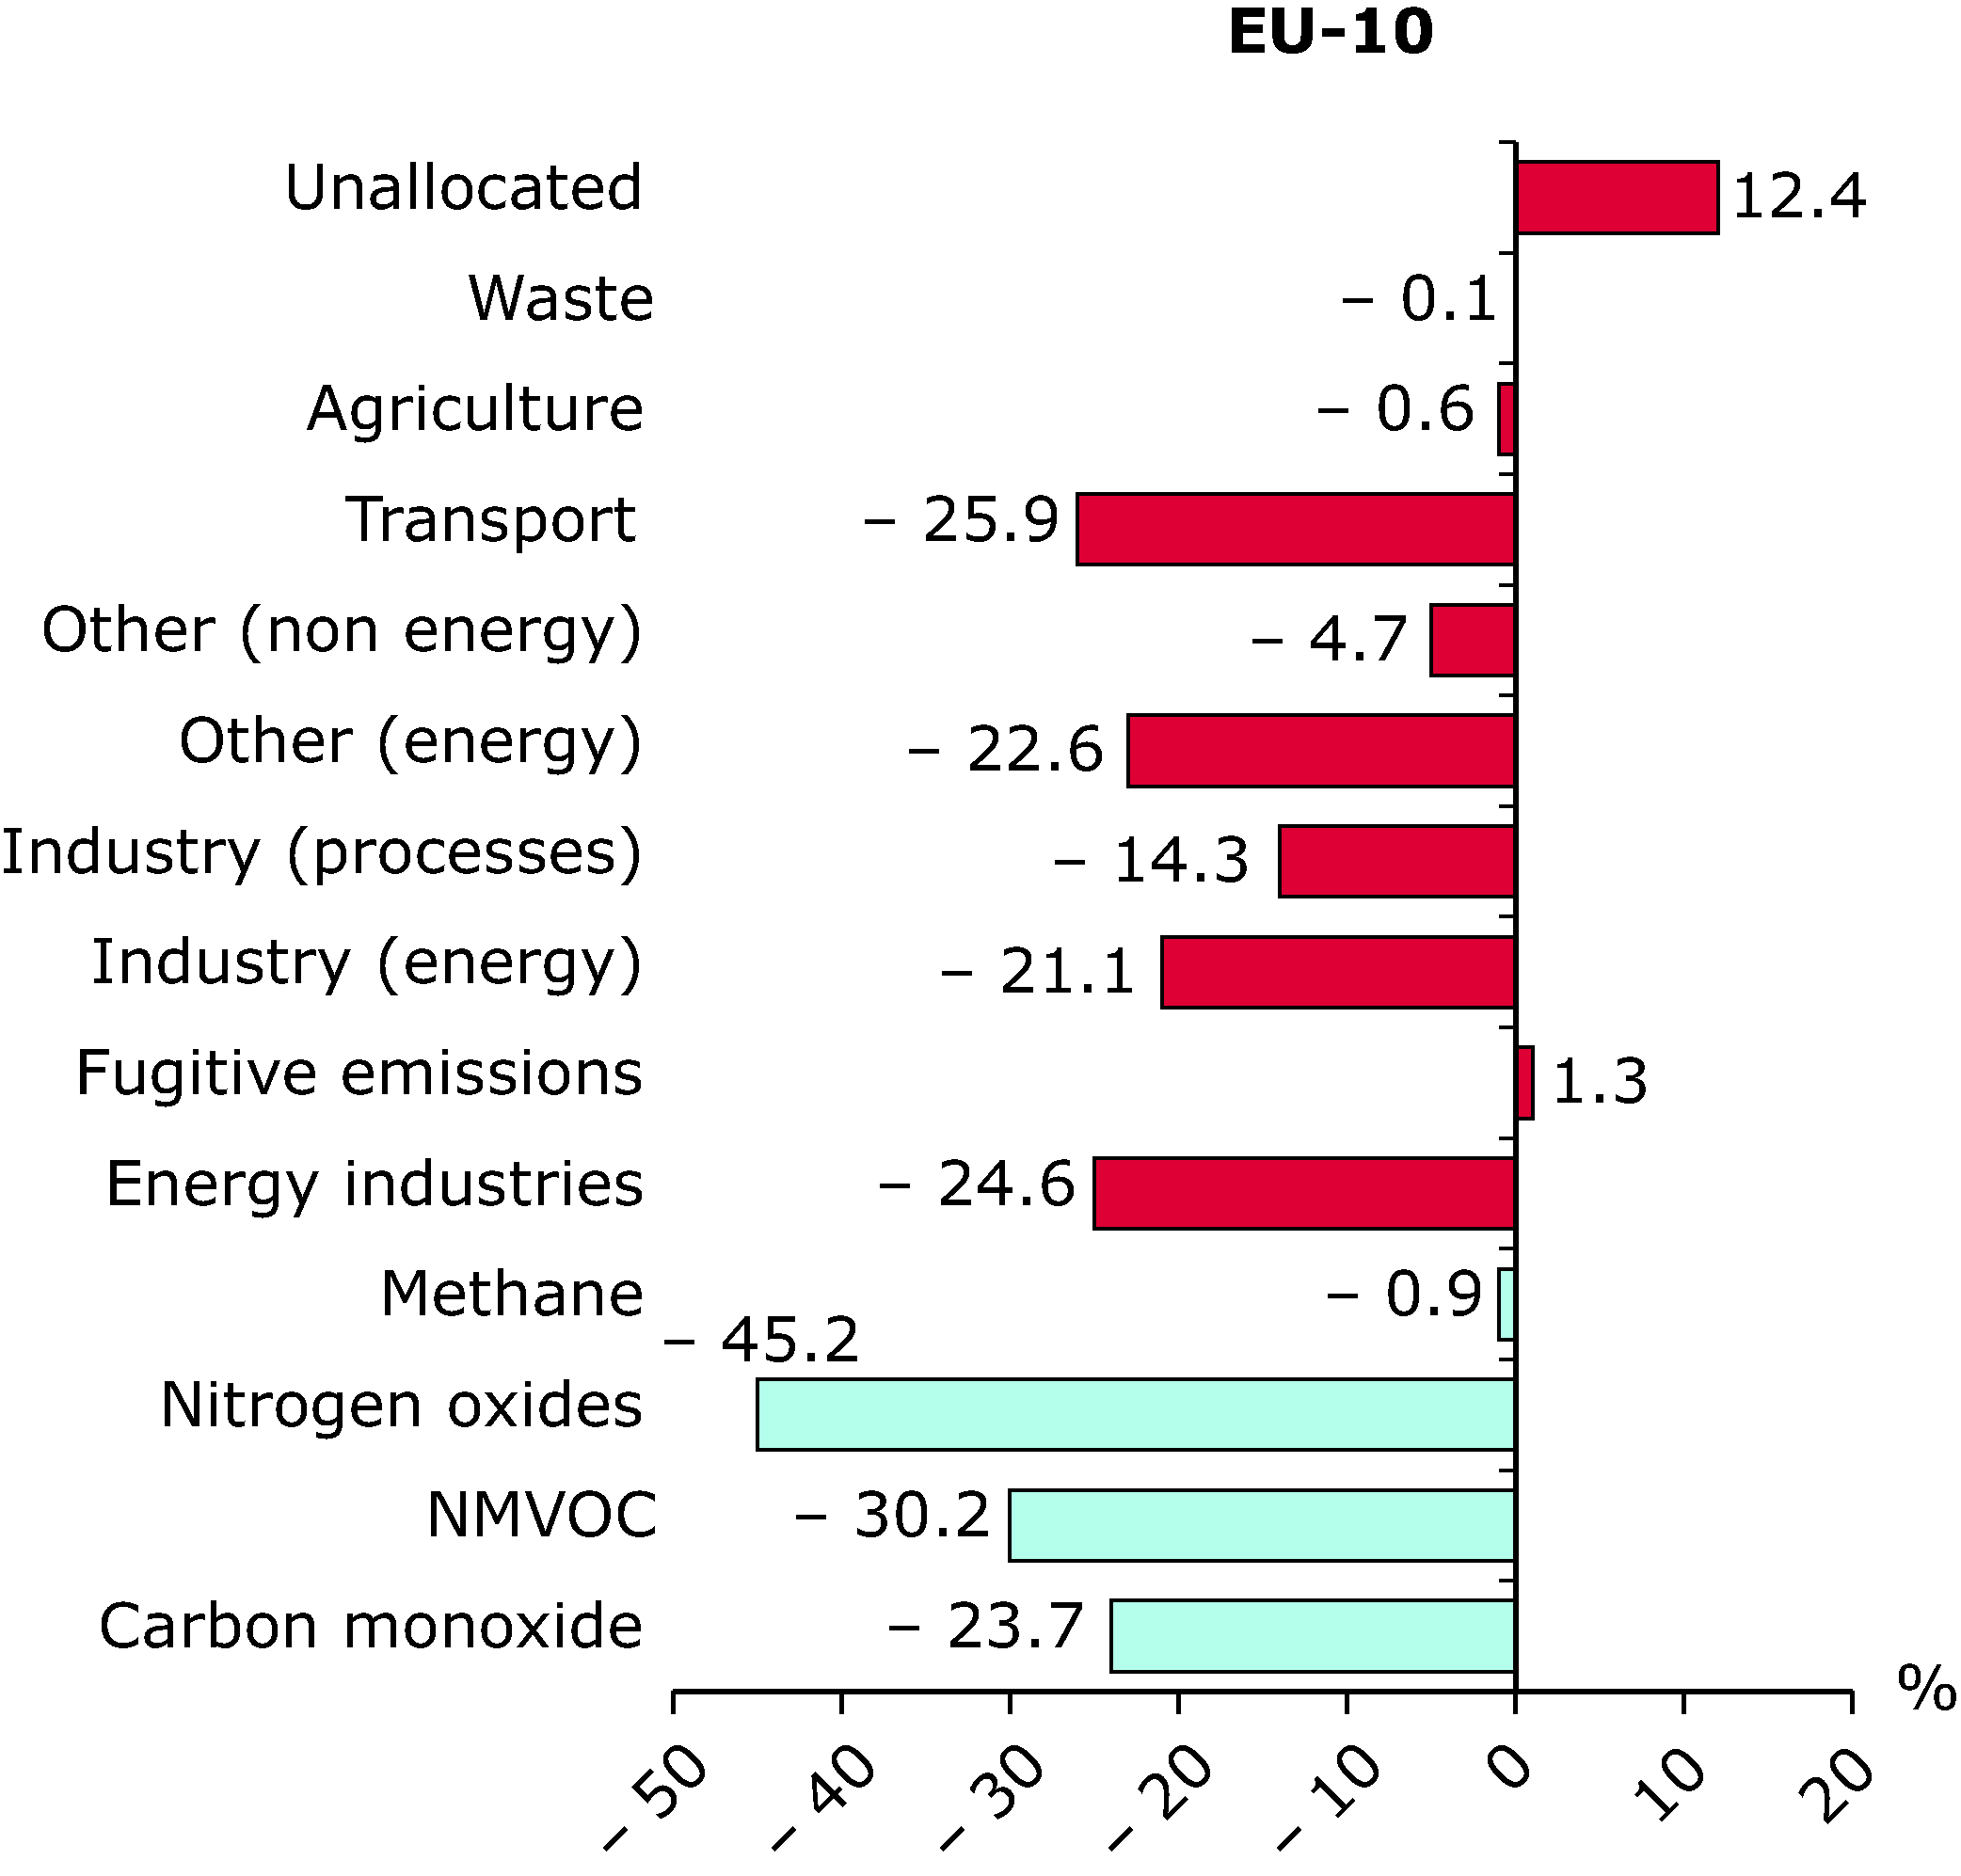 Contribution to change in ozone precursors emissions for each sector and pollutant (EU-10), 2002